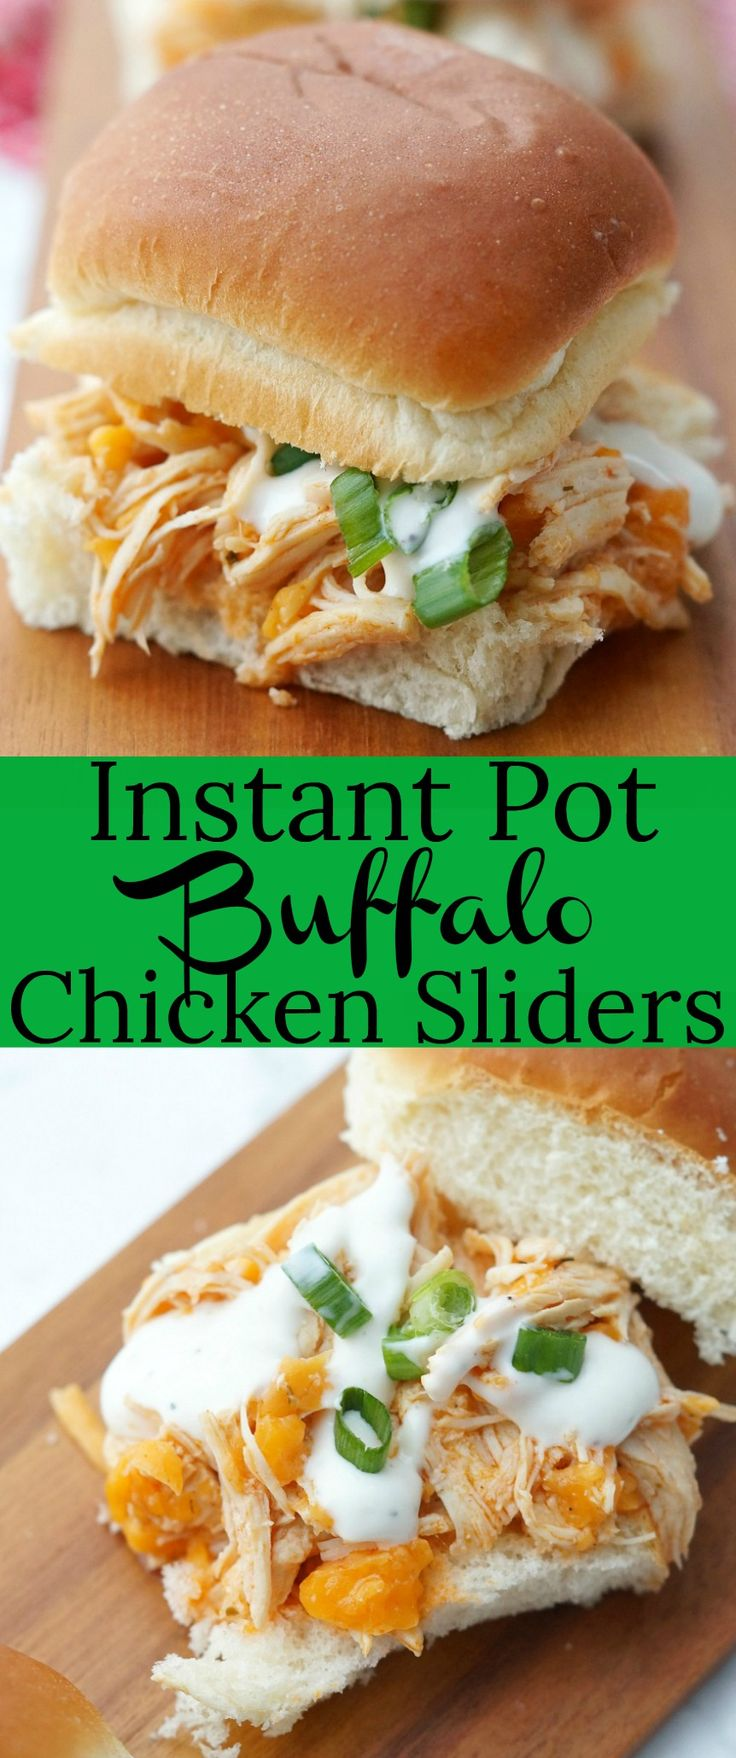 Easy Instant Pot Buffalo Chicken Sliders. Such an easy sandwich recipe made in minutes in the Instant Pot!